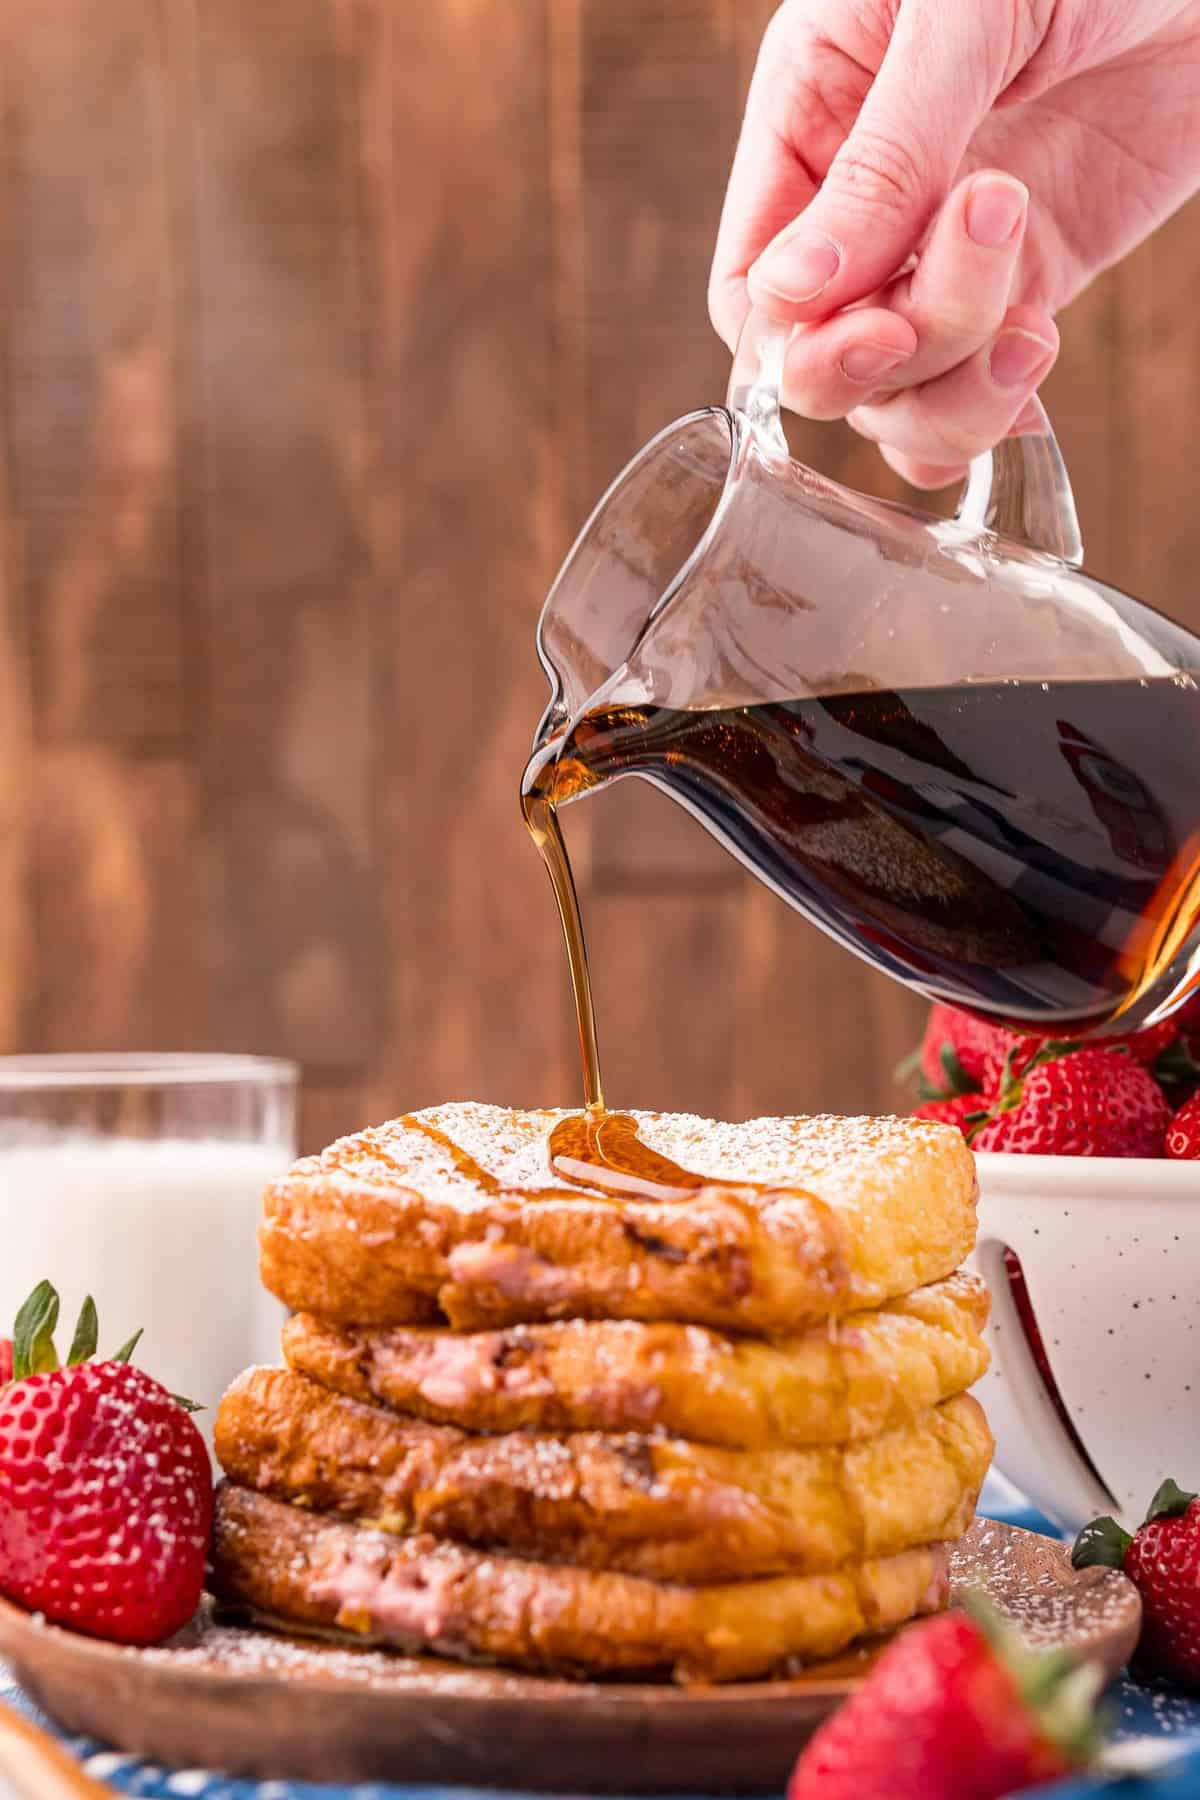 Maple syrup being poured on a stack of french toast.